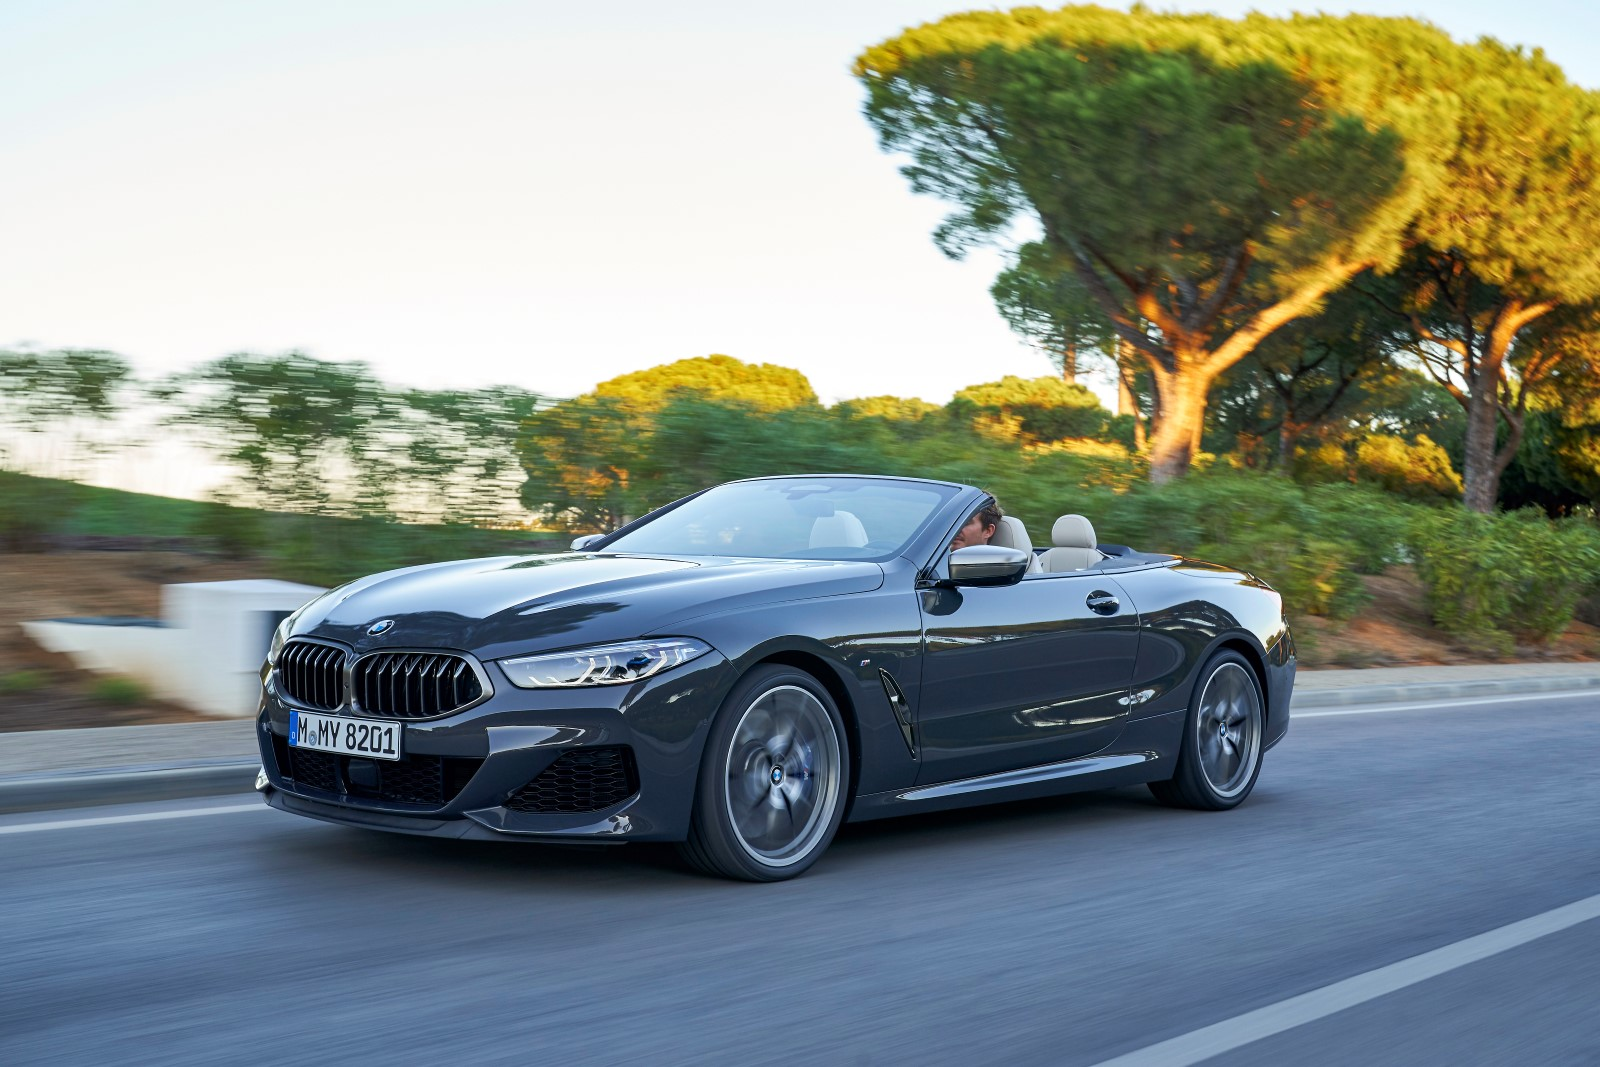 Tesla Interieur Bmw M850i Xdrive Convertible: Rijtest En Video - Autoblog.nl